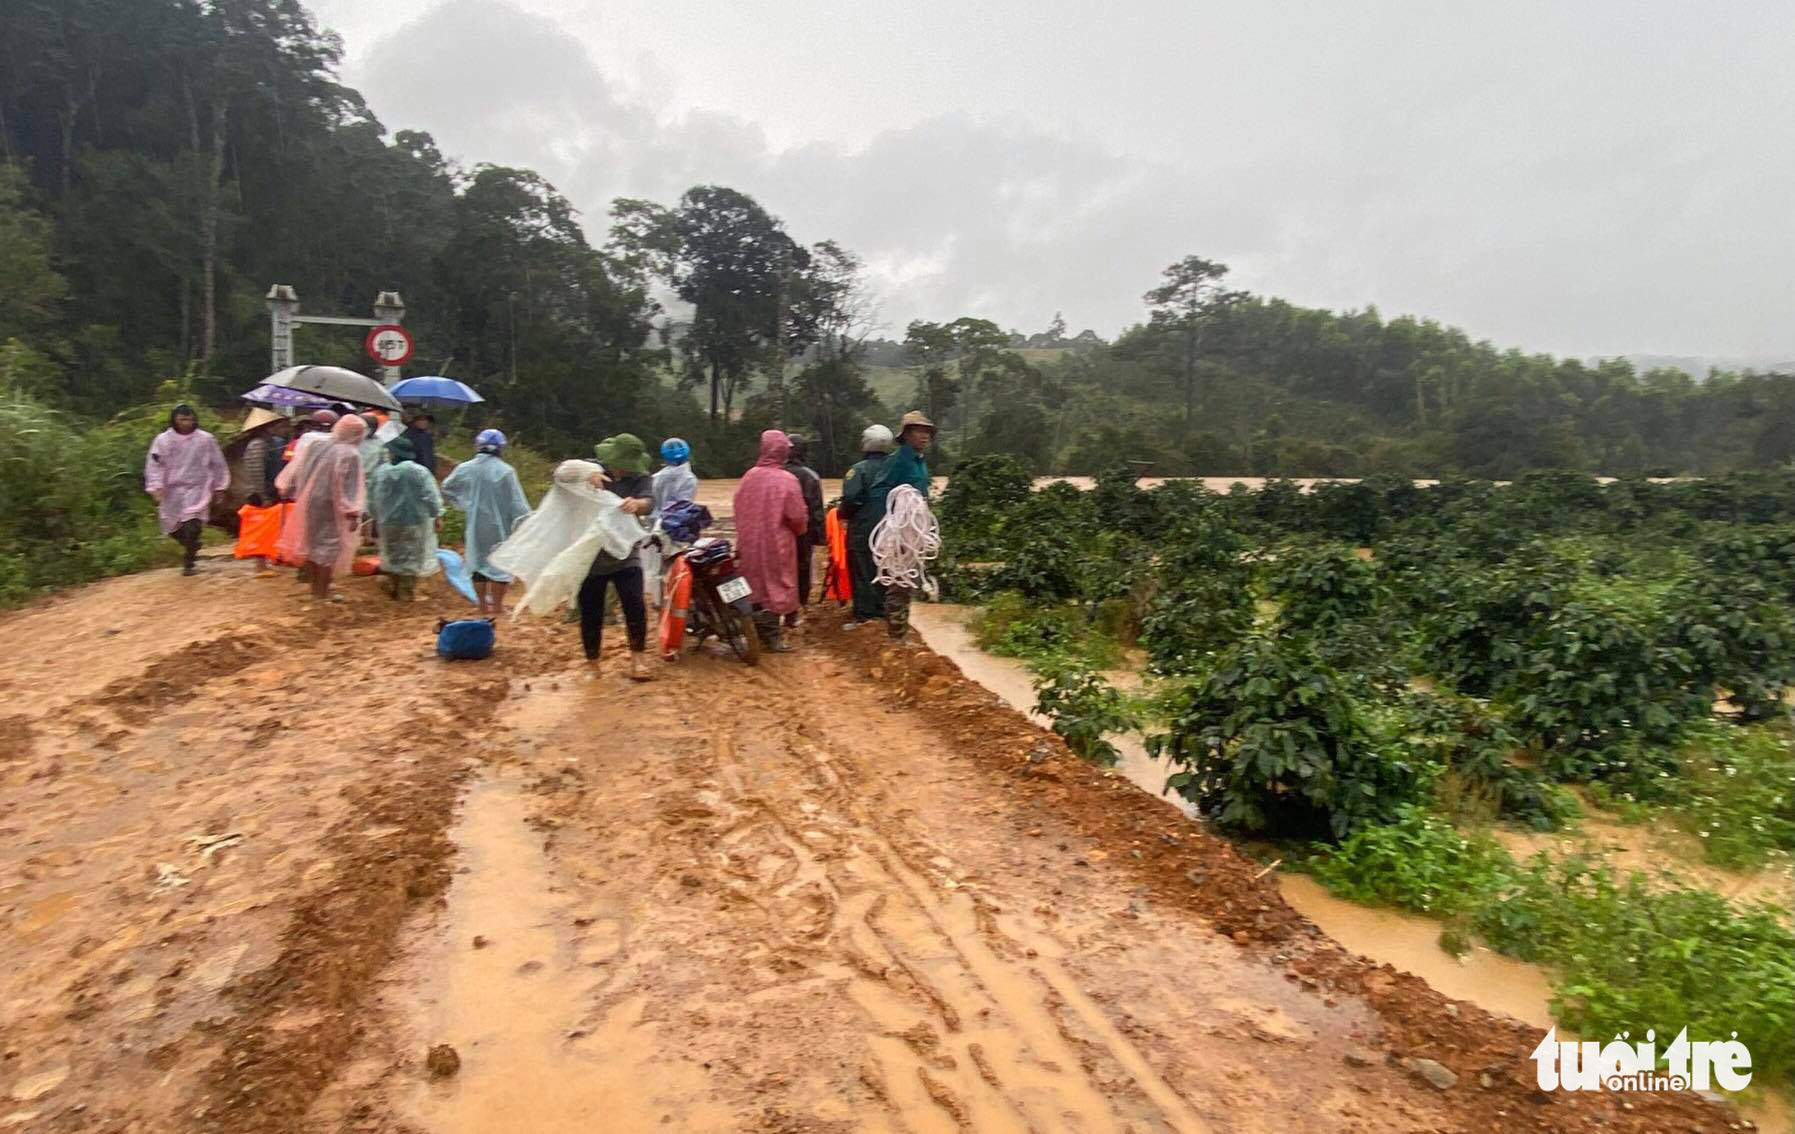 Tourists swept away by flood during trekking tour at Vietnam national park